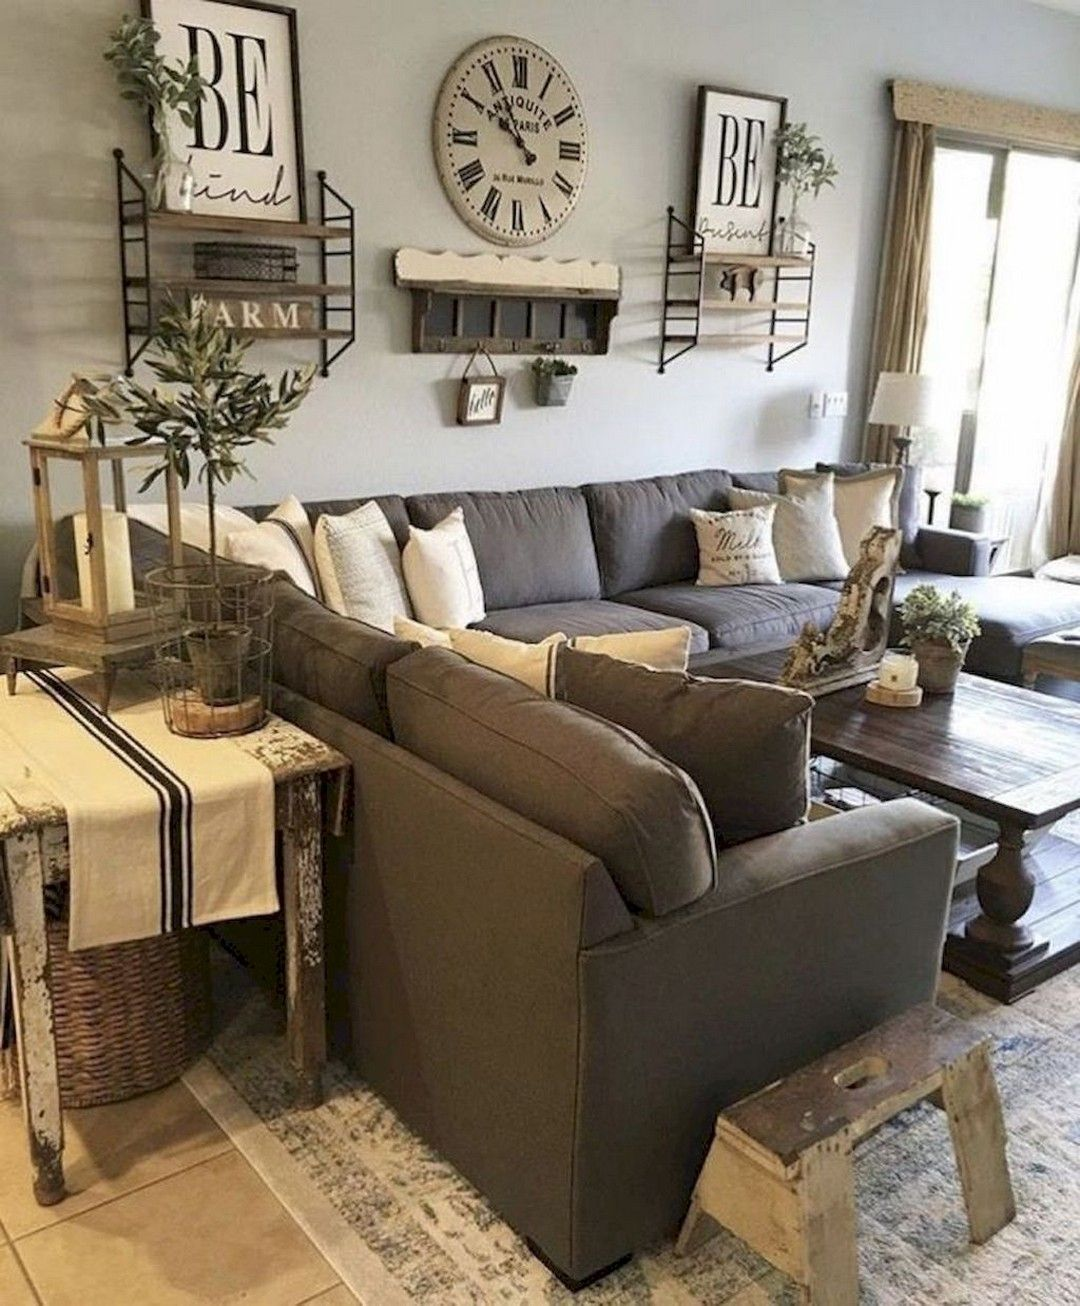 How to easily make  modern farmhouse decors in your house also so about ideas diy decor interior design living rooms rh pinterest